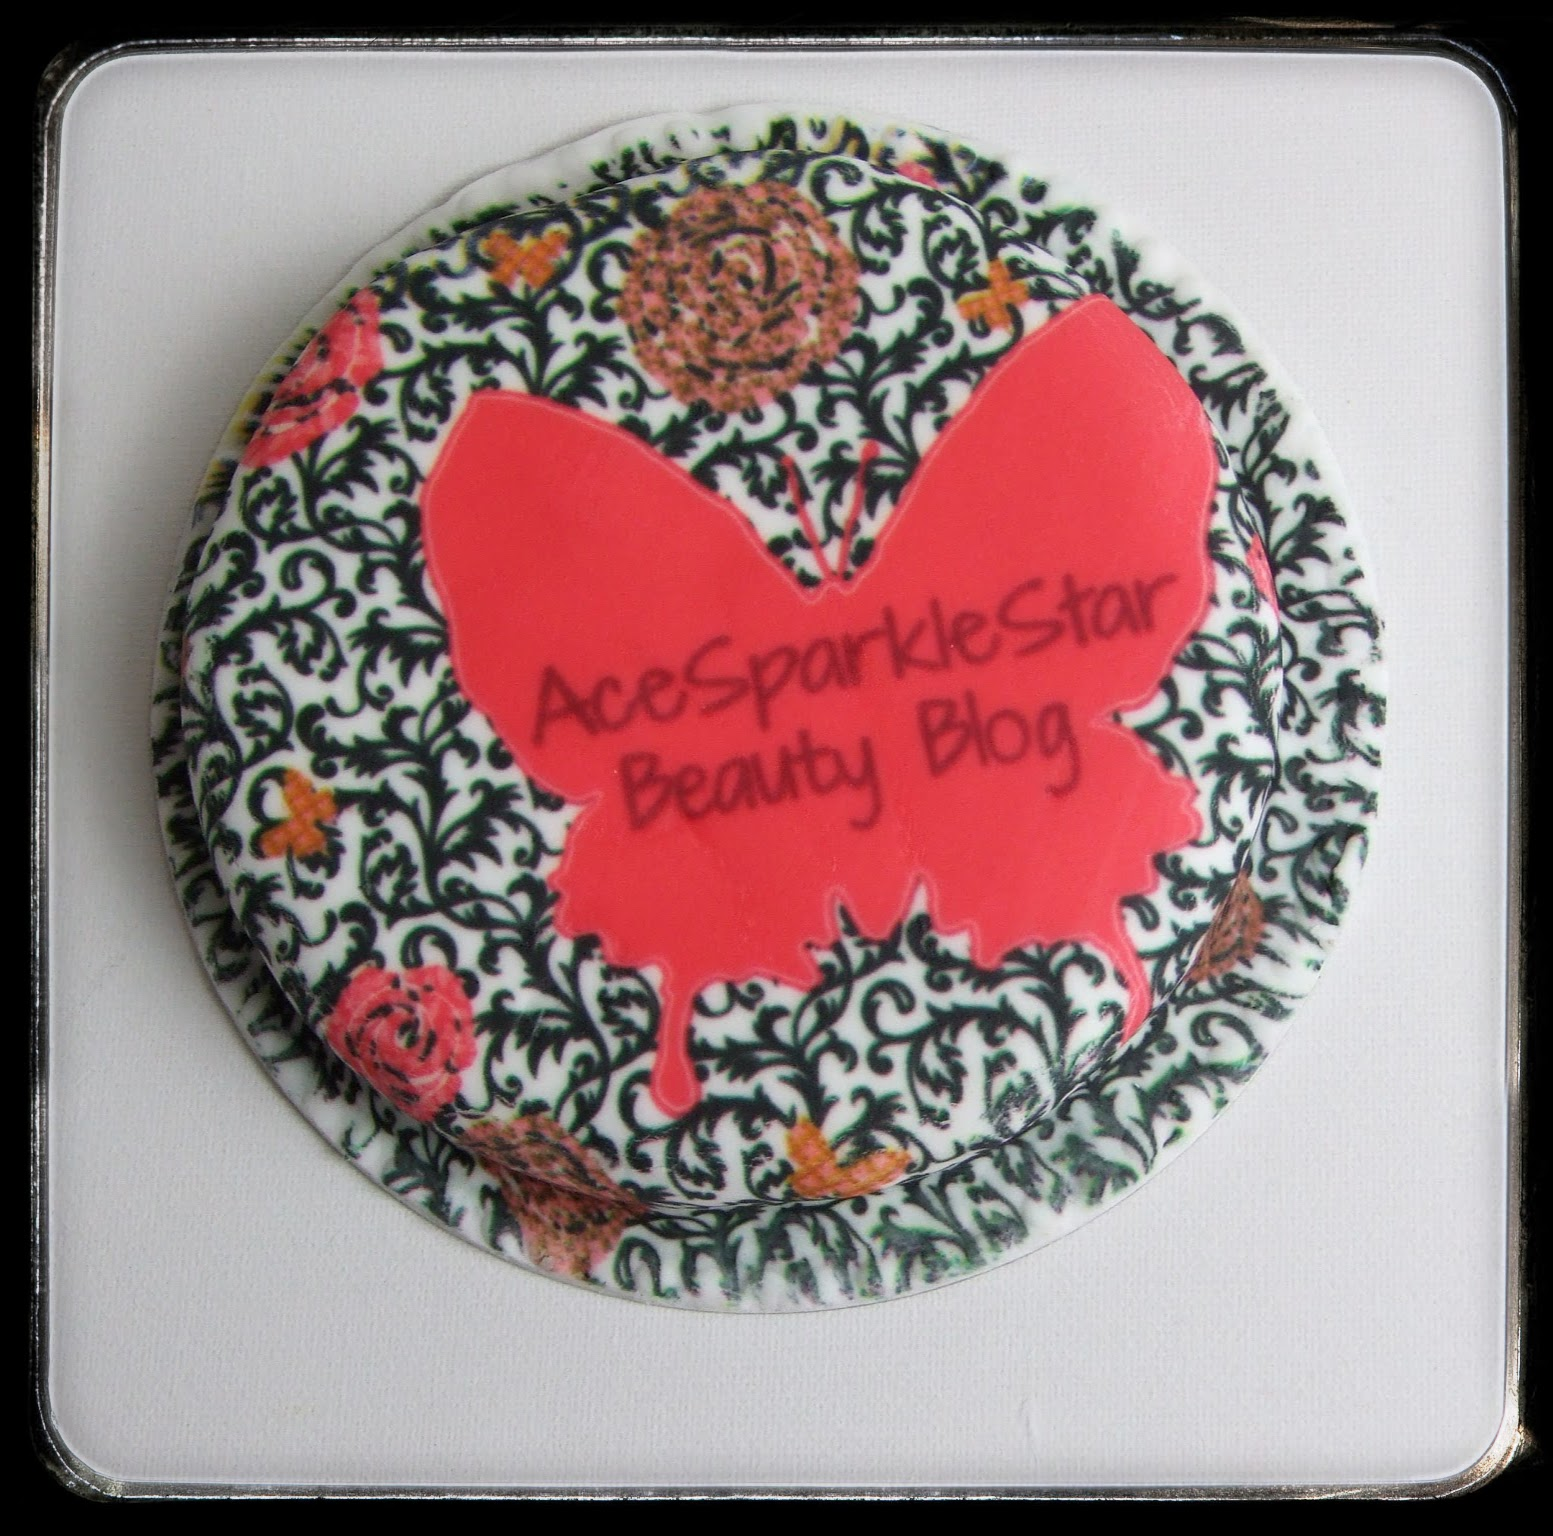 bakerdays.com letterbox cake post design personalise review blog